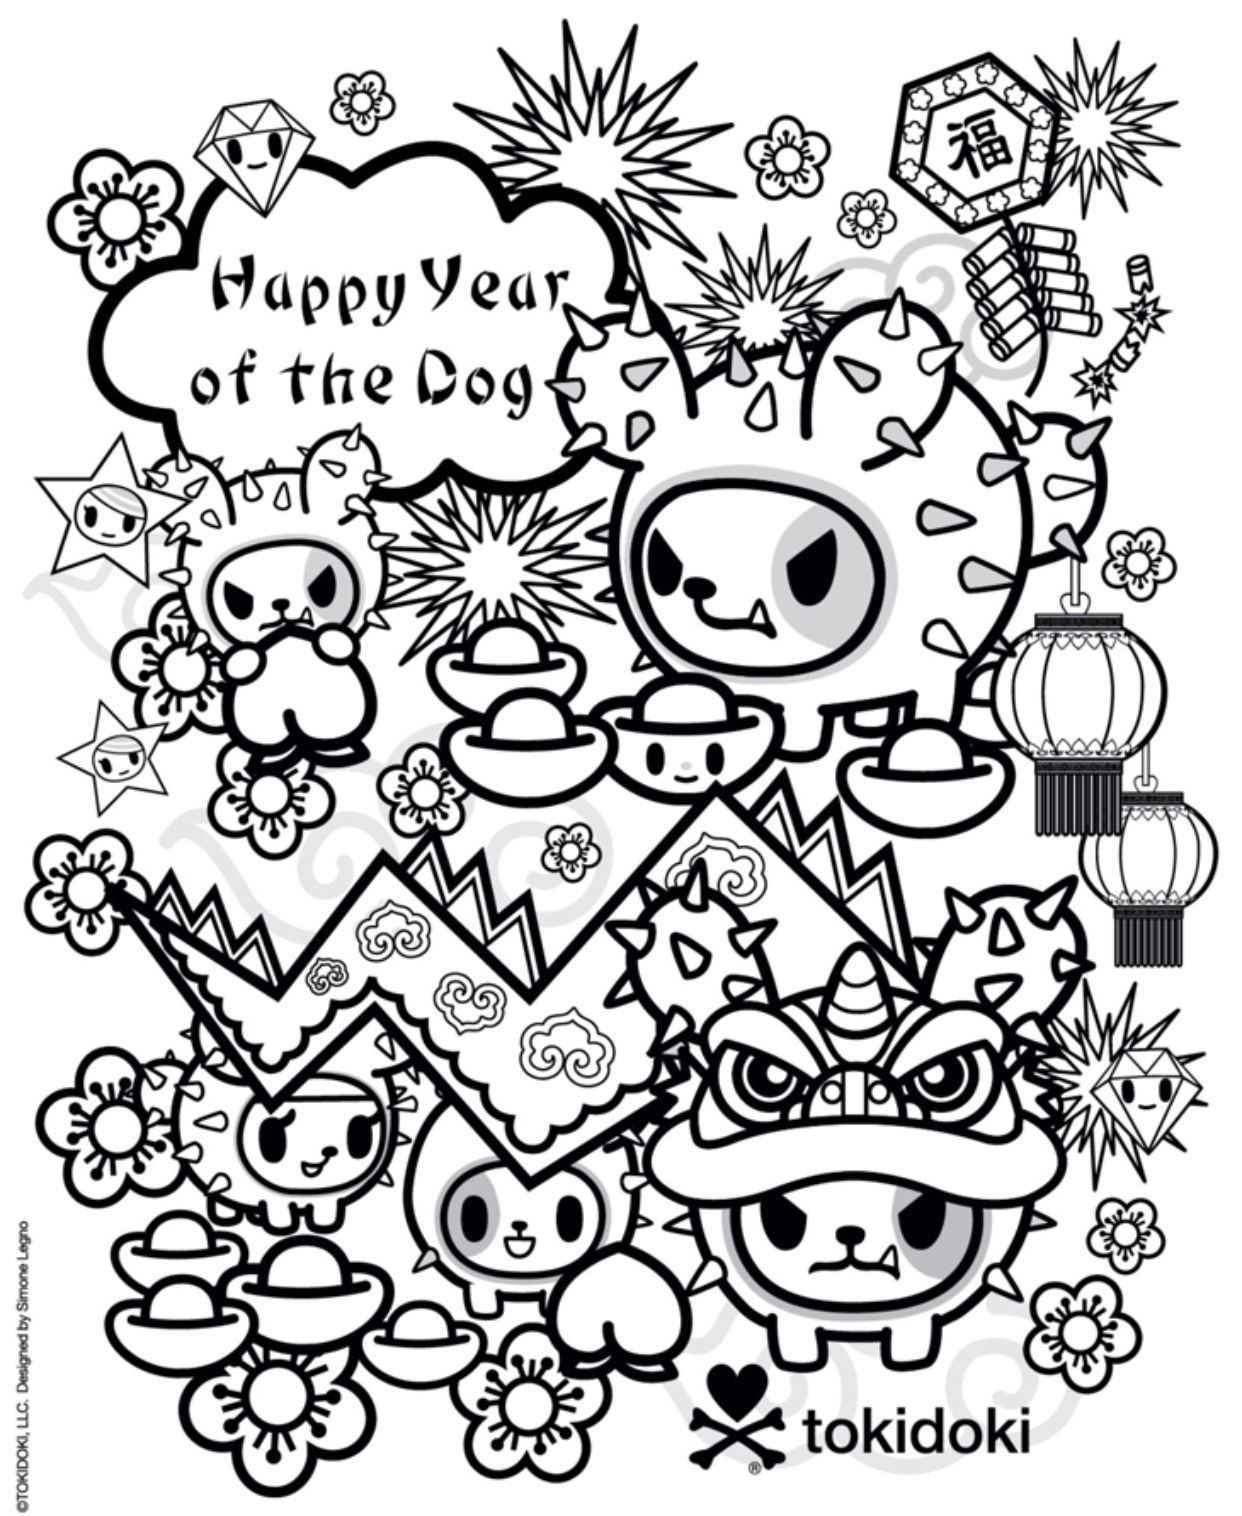 - Tokidoki YOTD Colouring Page Coloring Pages, Unicorn Coloring